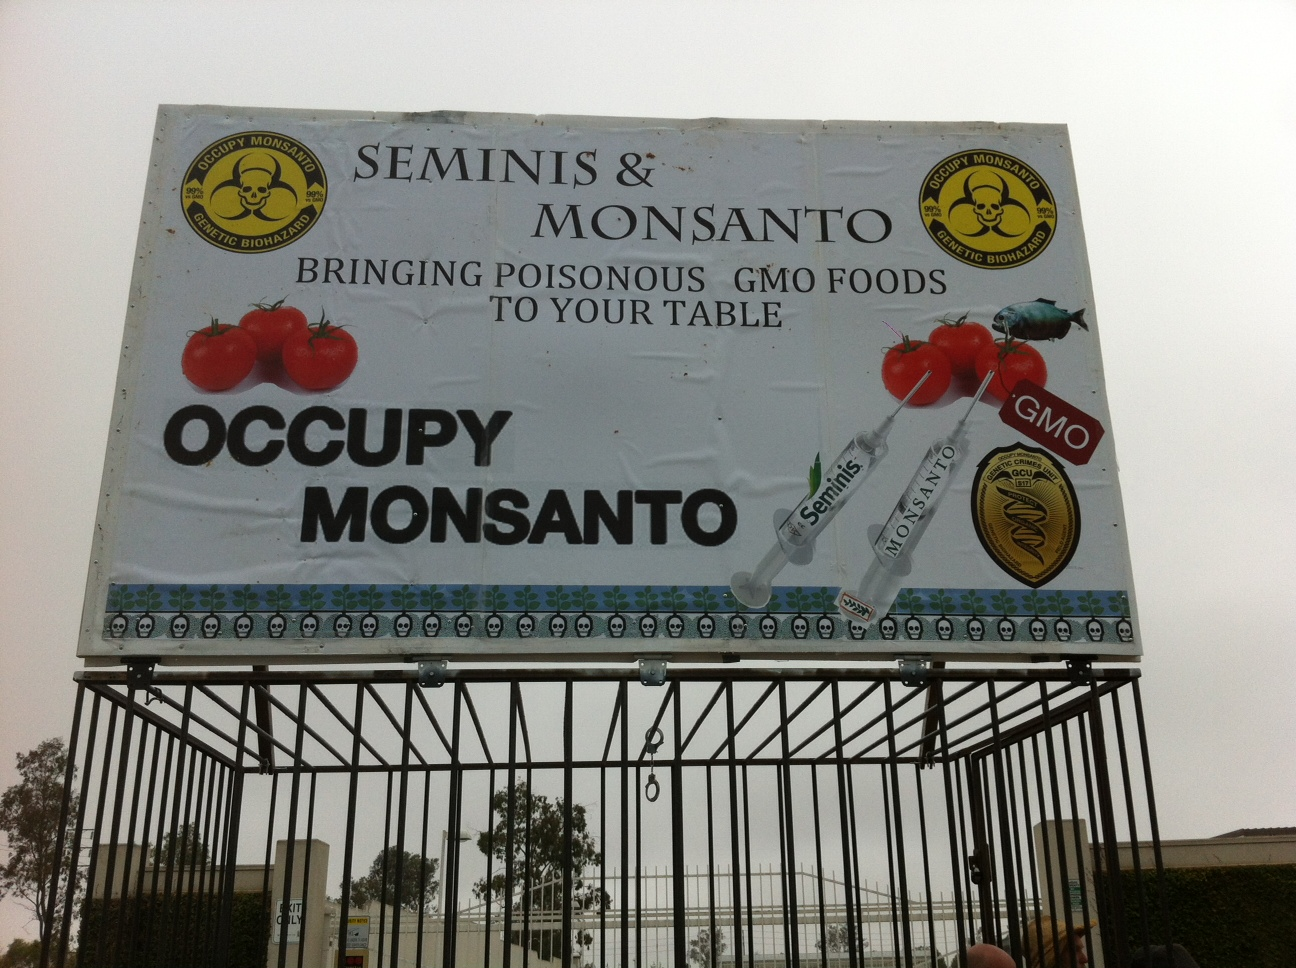 oxnard action photo 3 Photos of GCU Field Agents occupying Monsantos Oxnard facility Seminis Protest Oxnard Occupy Monsanto GMO Seeds GCU Direct Action Decontamination Event CA